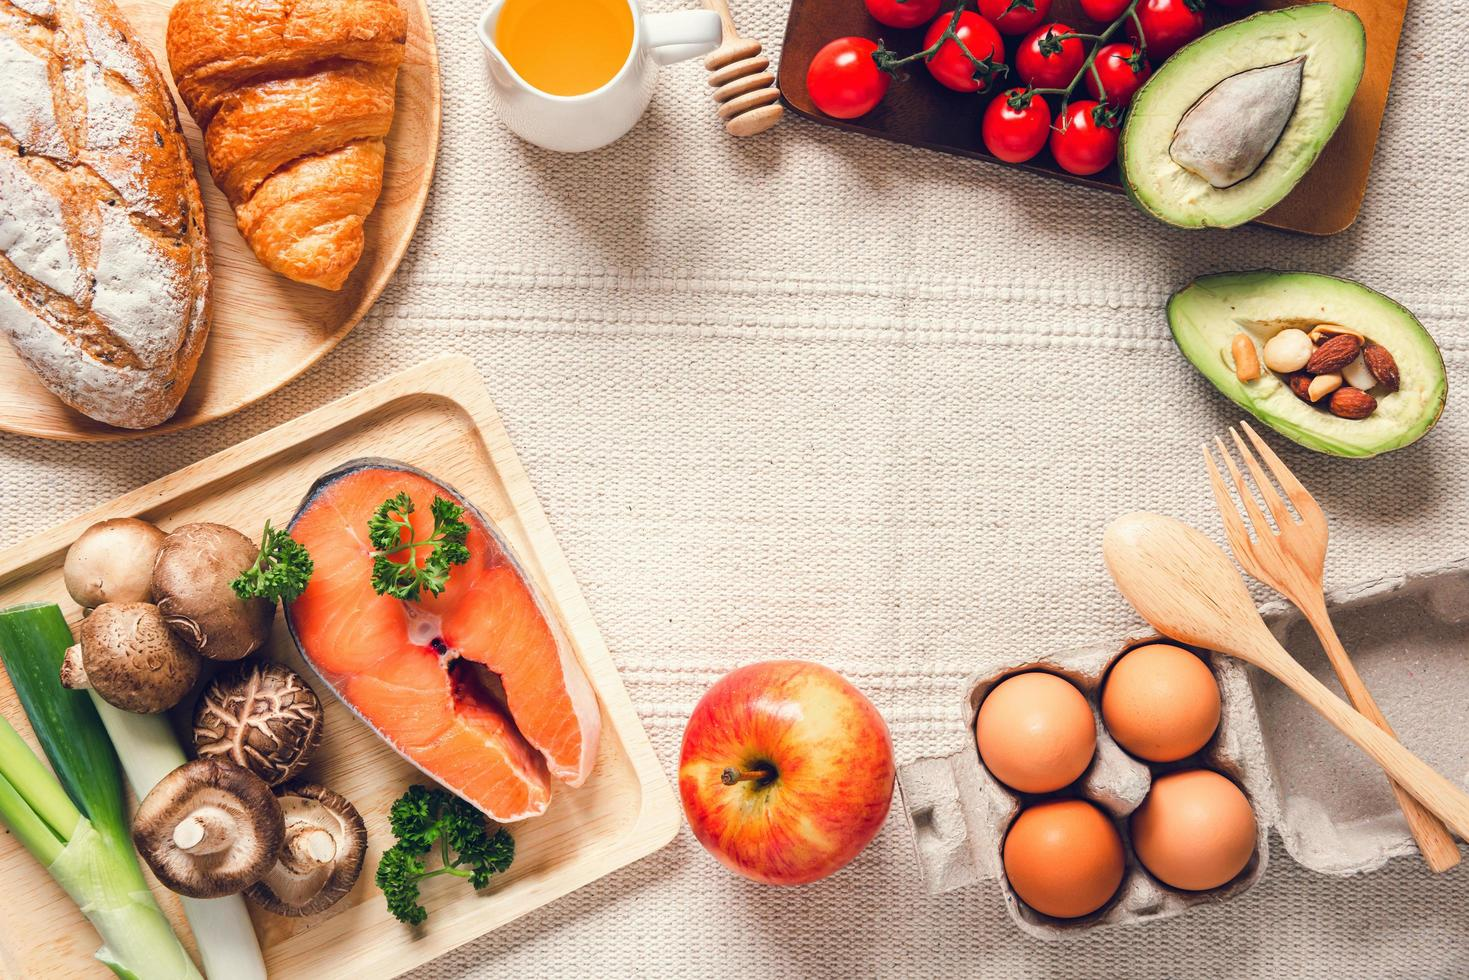 Table top view of healthy foods photo